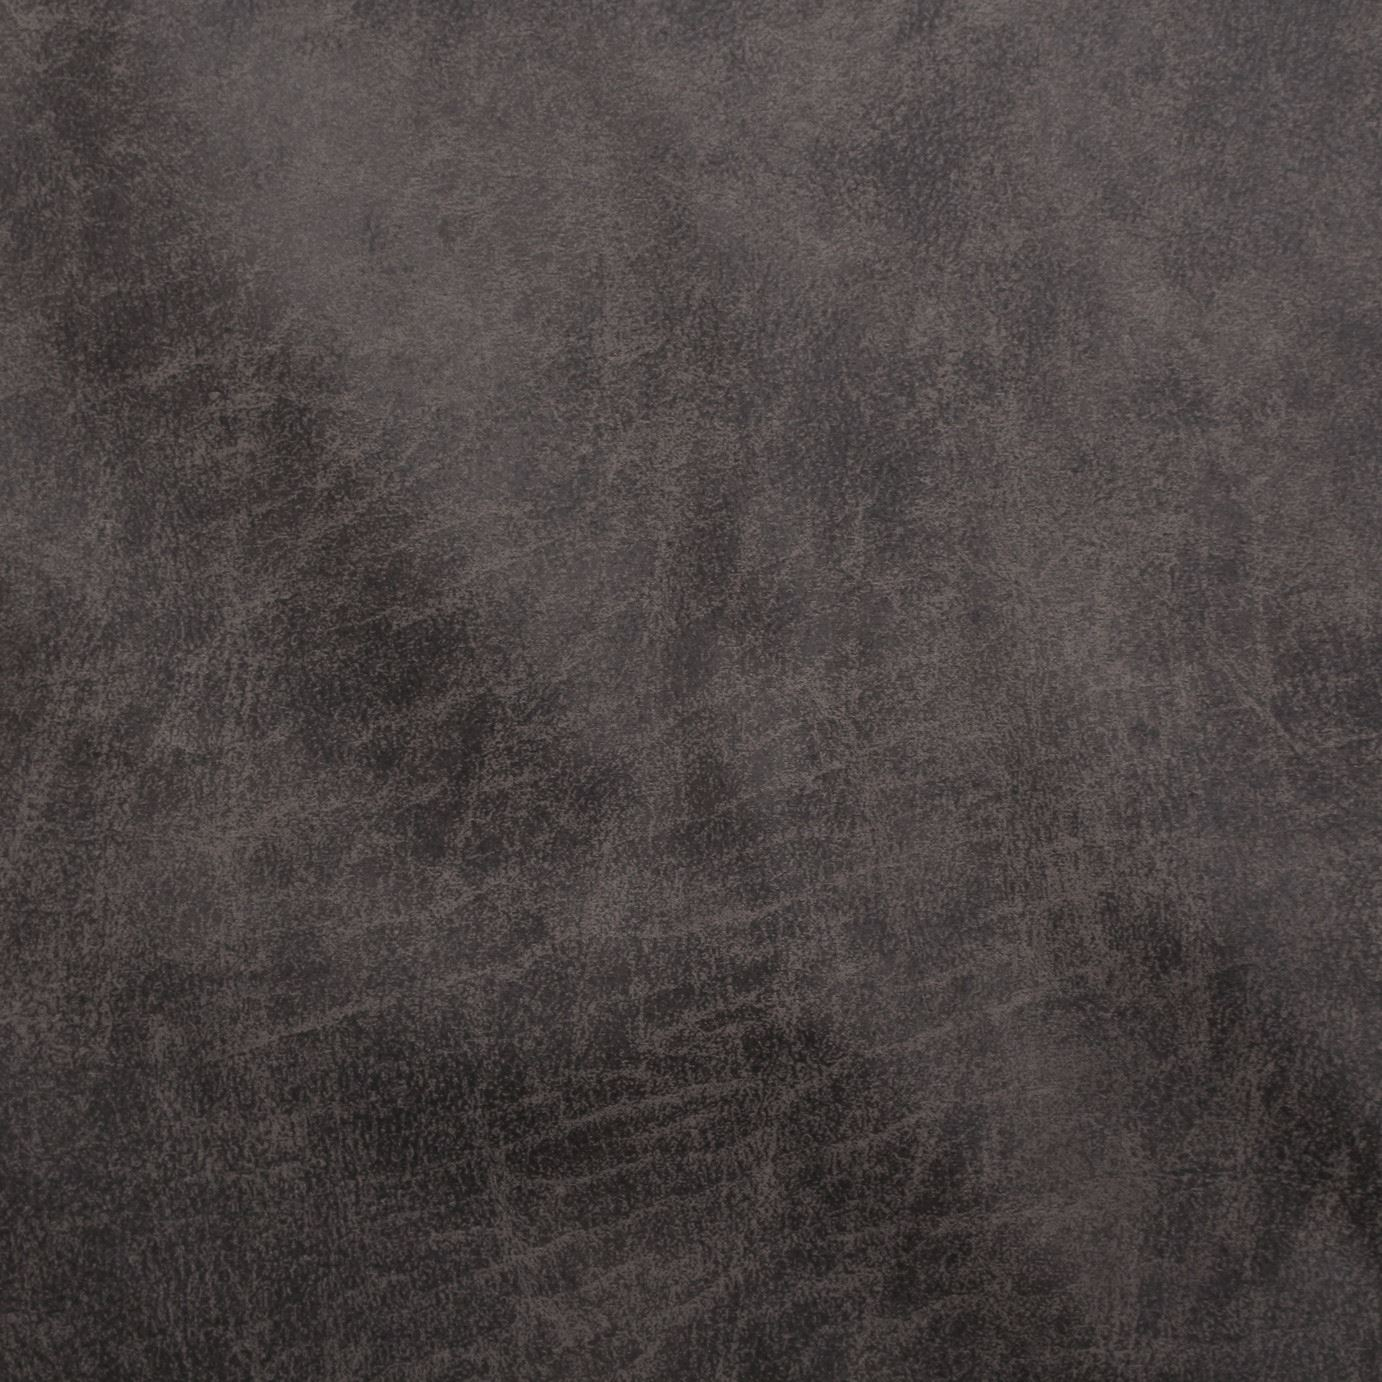 AGED BROWN DISTRESSED ANTIQUED SUEDE FAUX LEATHER ...